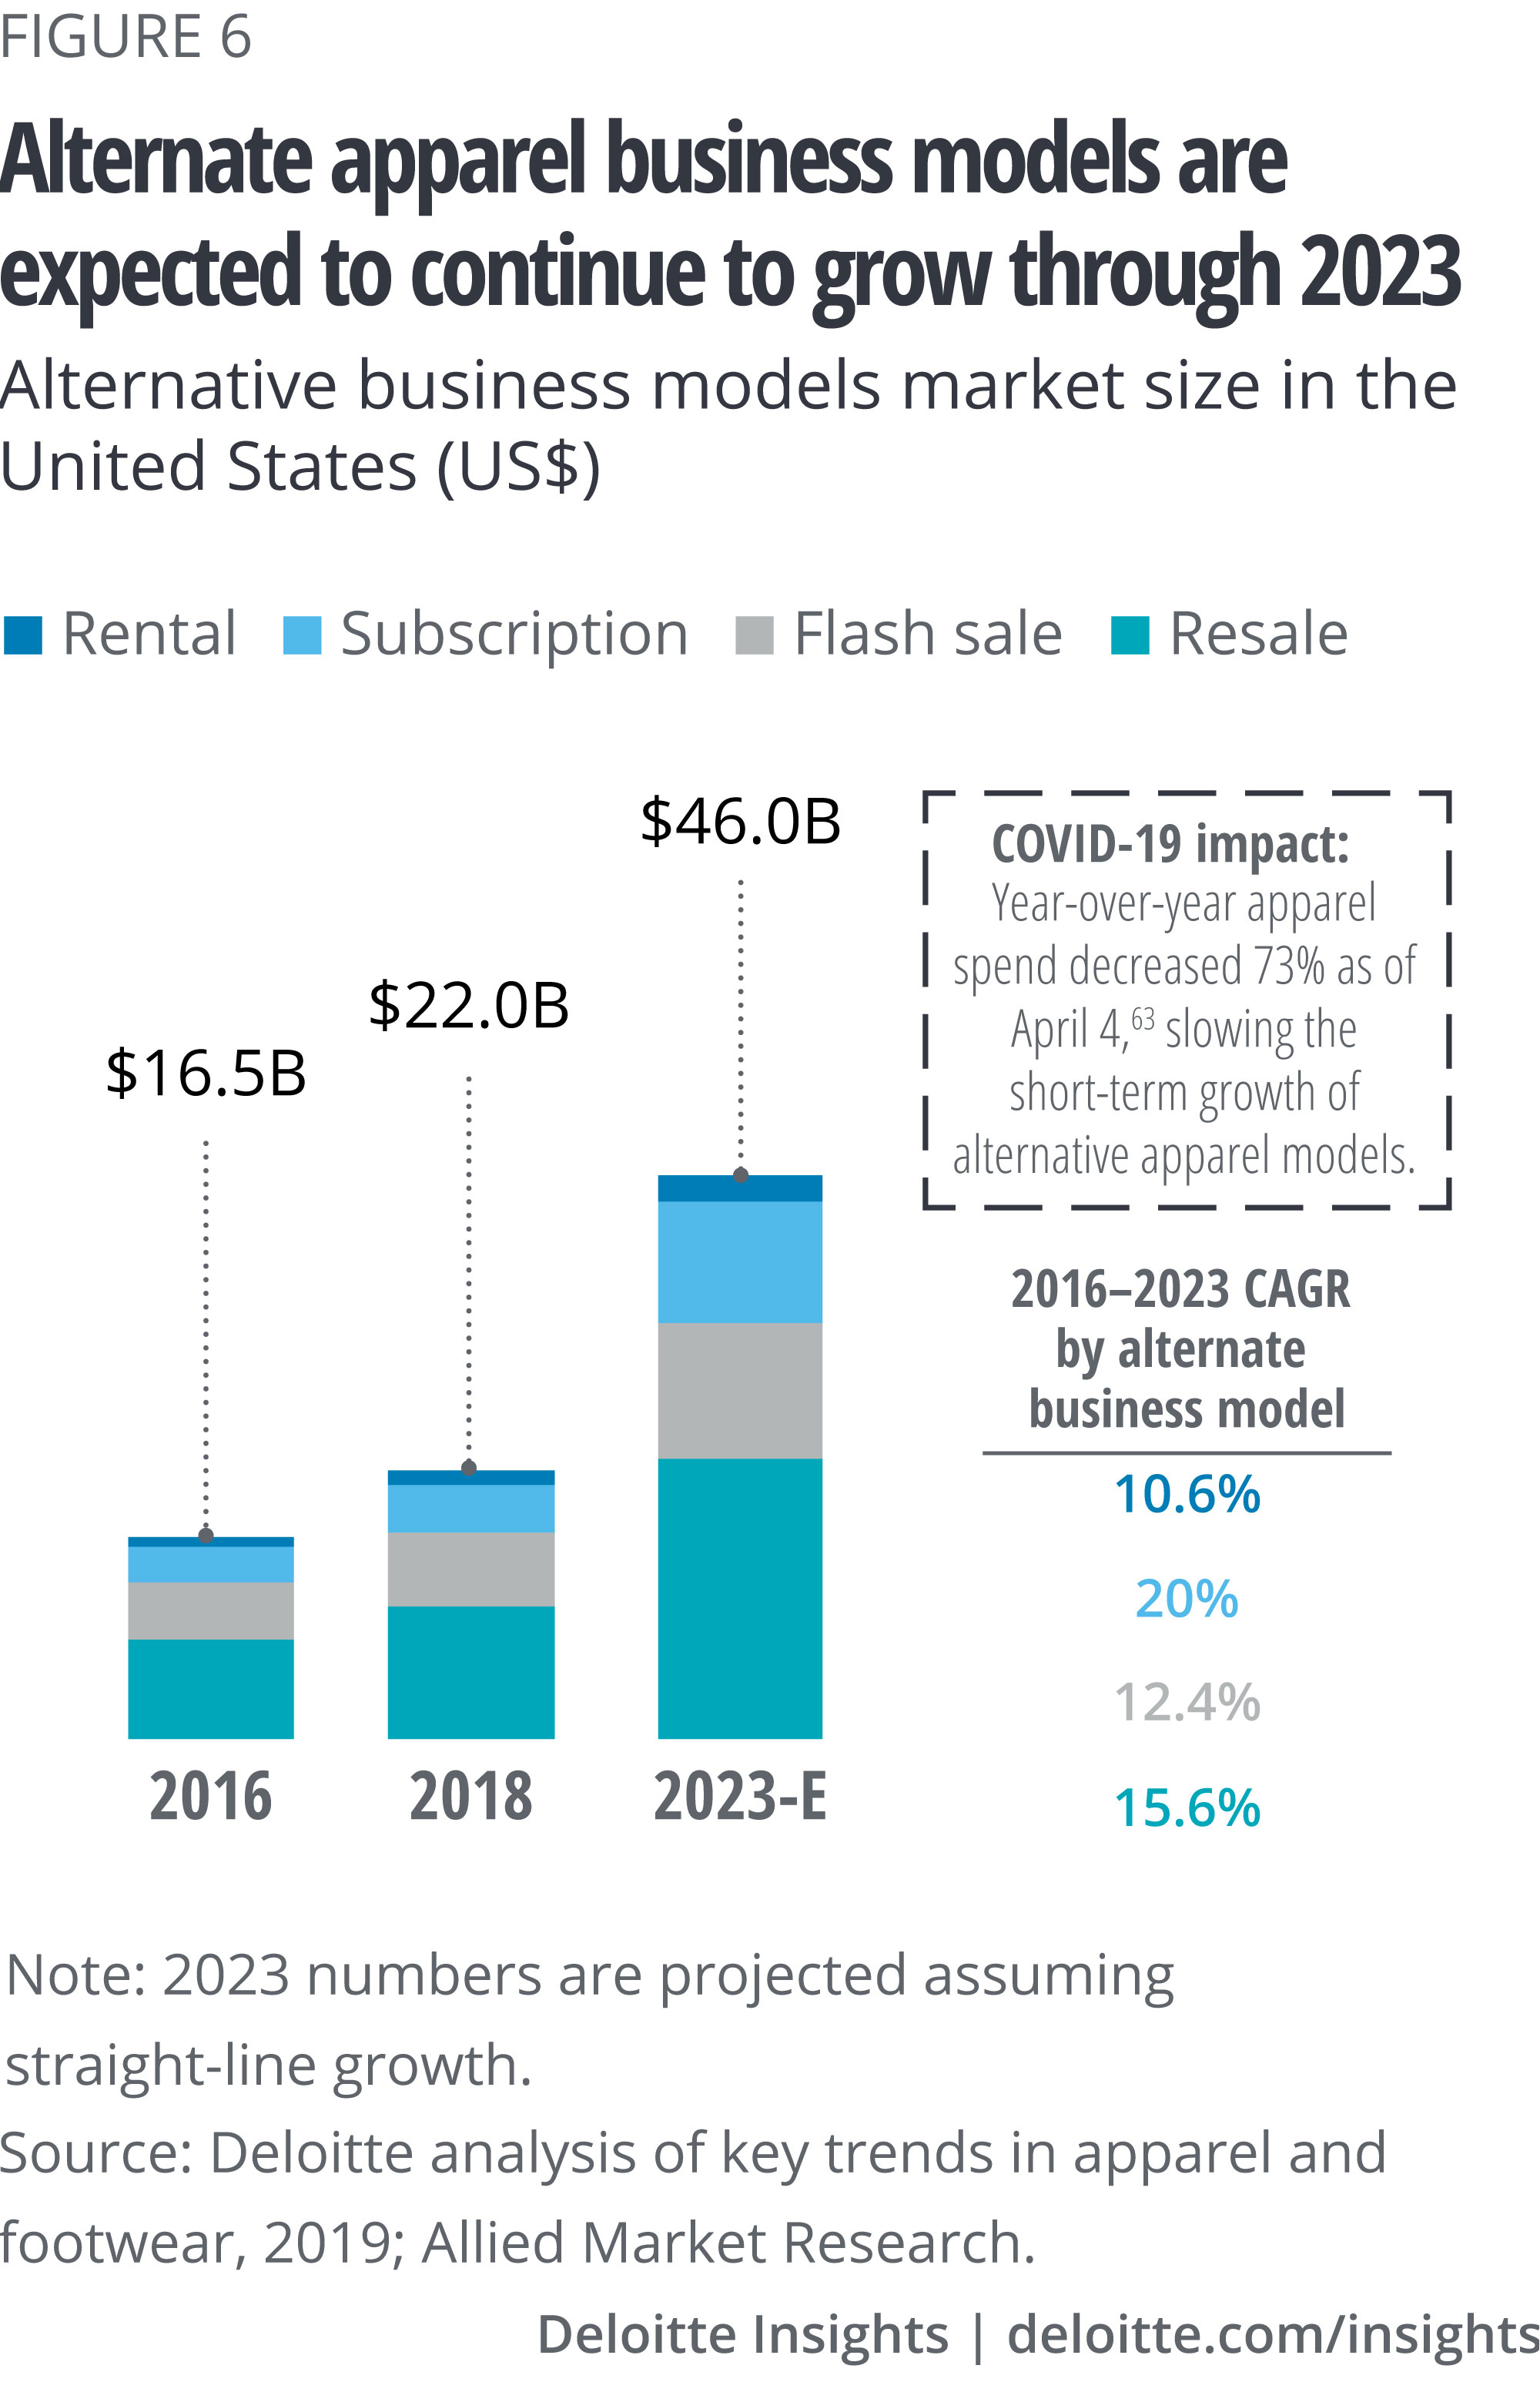 Alternative business models in apparel are expected to continue to grow through 2023